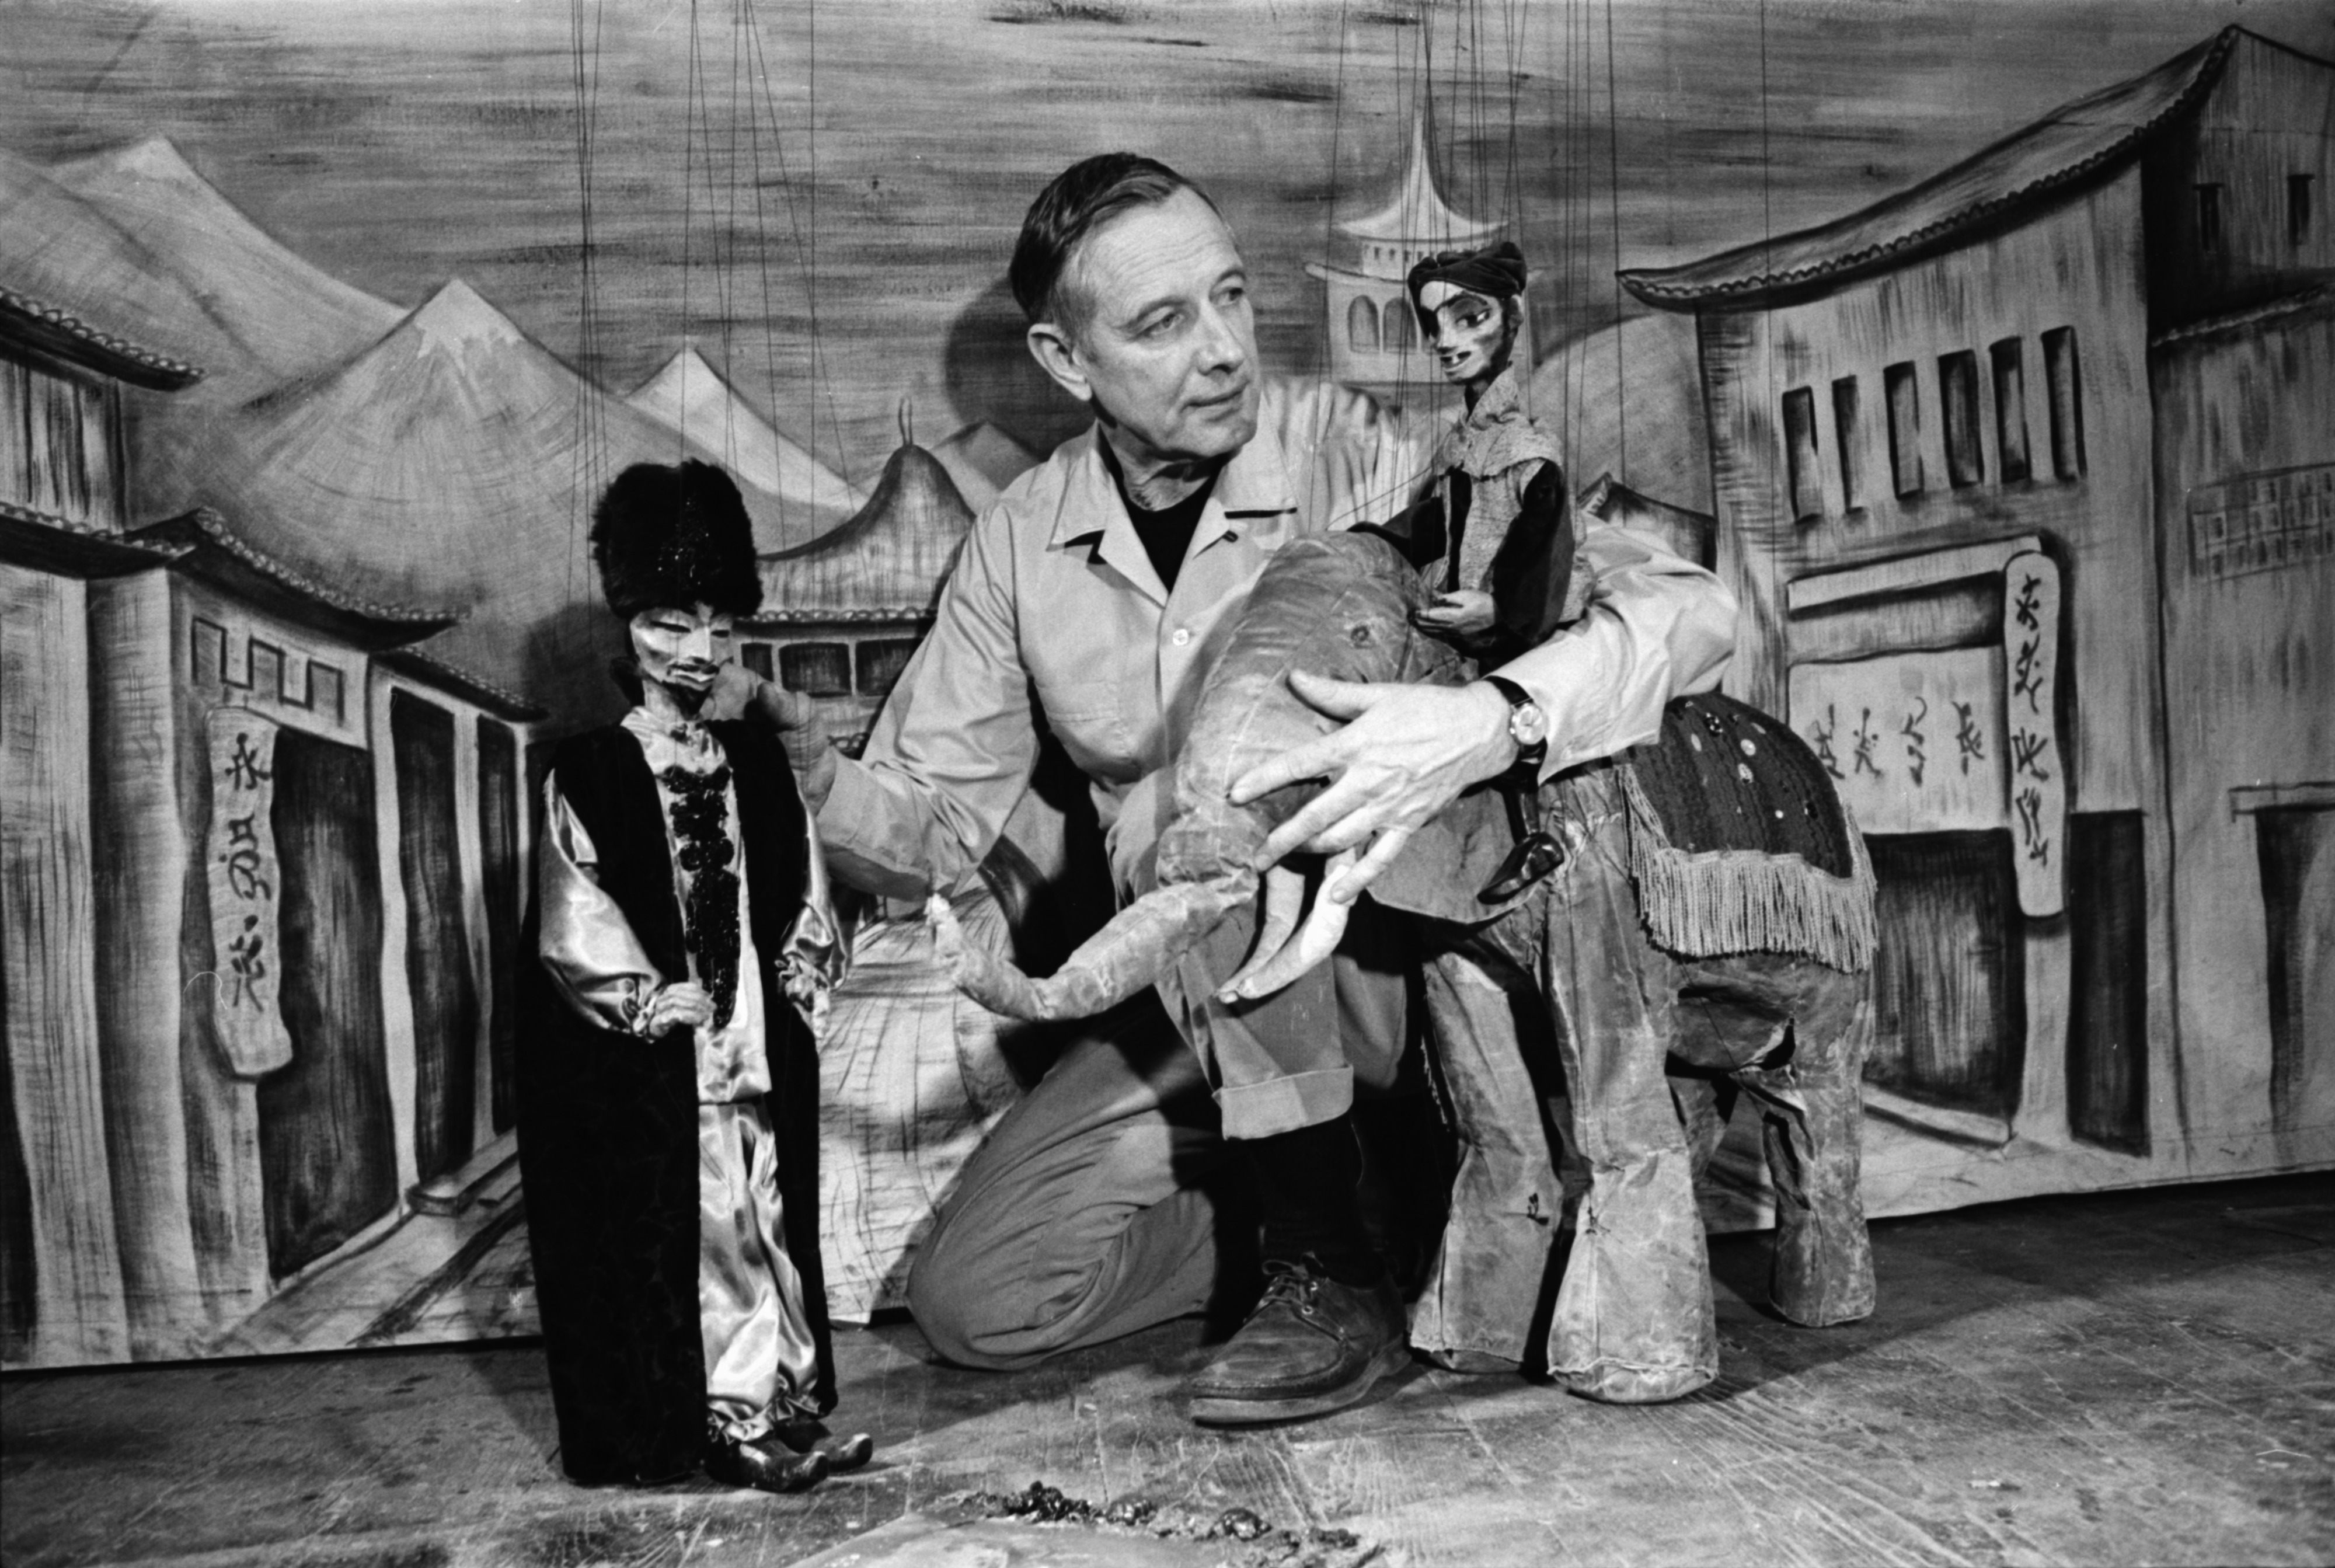 Meredith Bixby with his marionettes in February 1969. © The Ann Arbor News. Courtesy the Ann Arbor District Library archive.